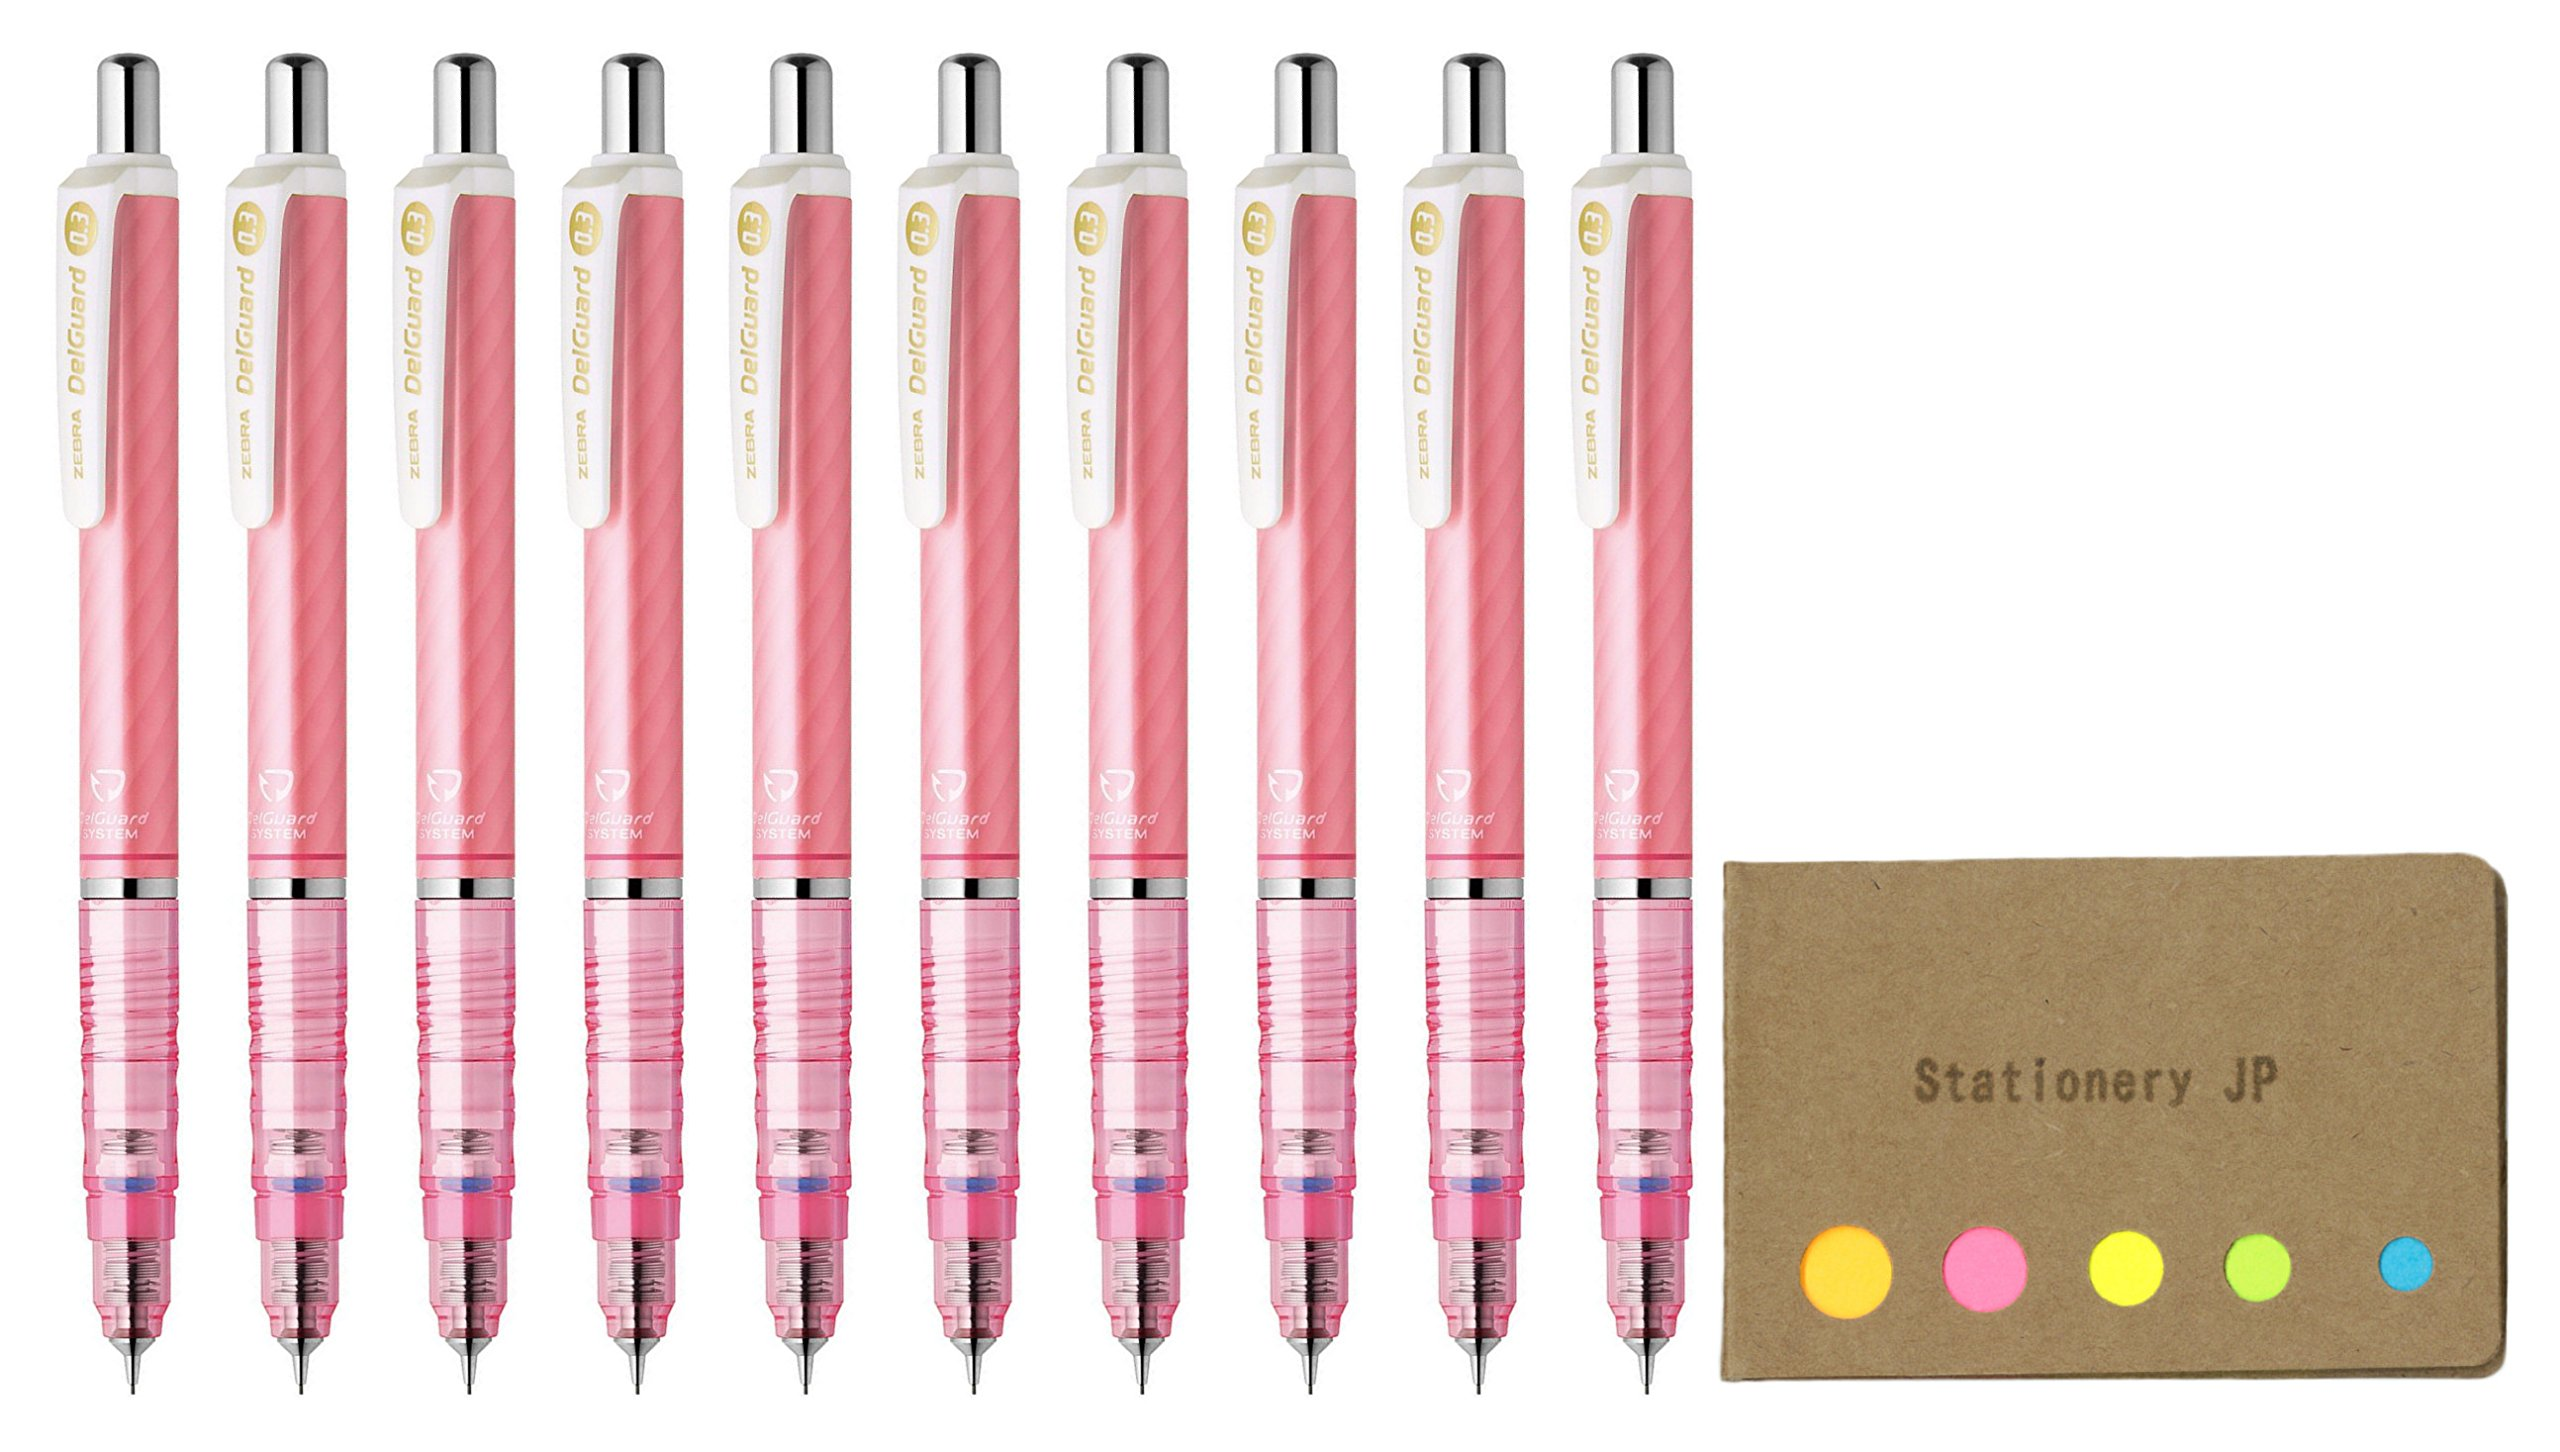 Zebra DelGuard Mechanical Pencil 0.3mm, Luminous Pink Body, 10-pack, Sticky Notes Value Set